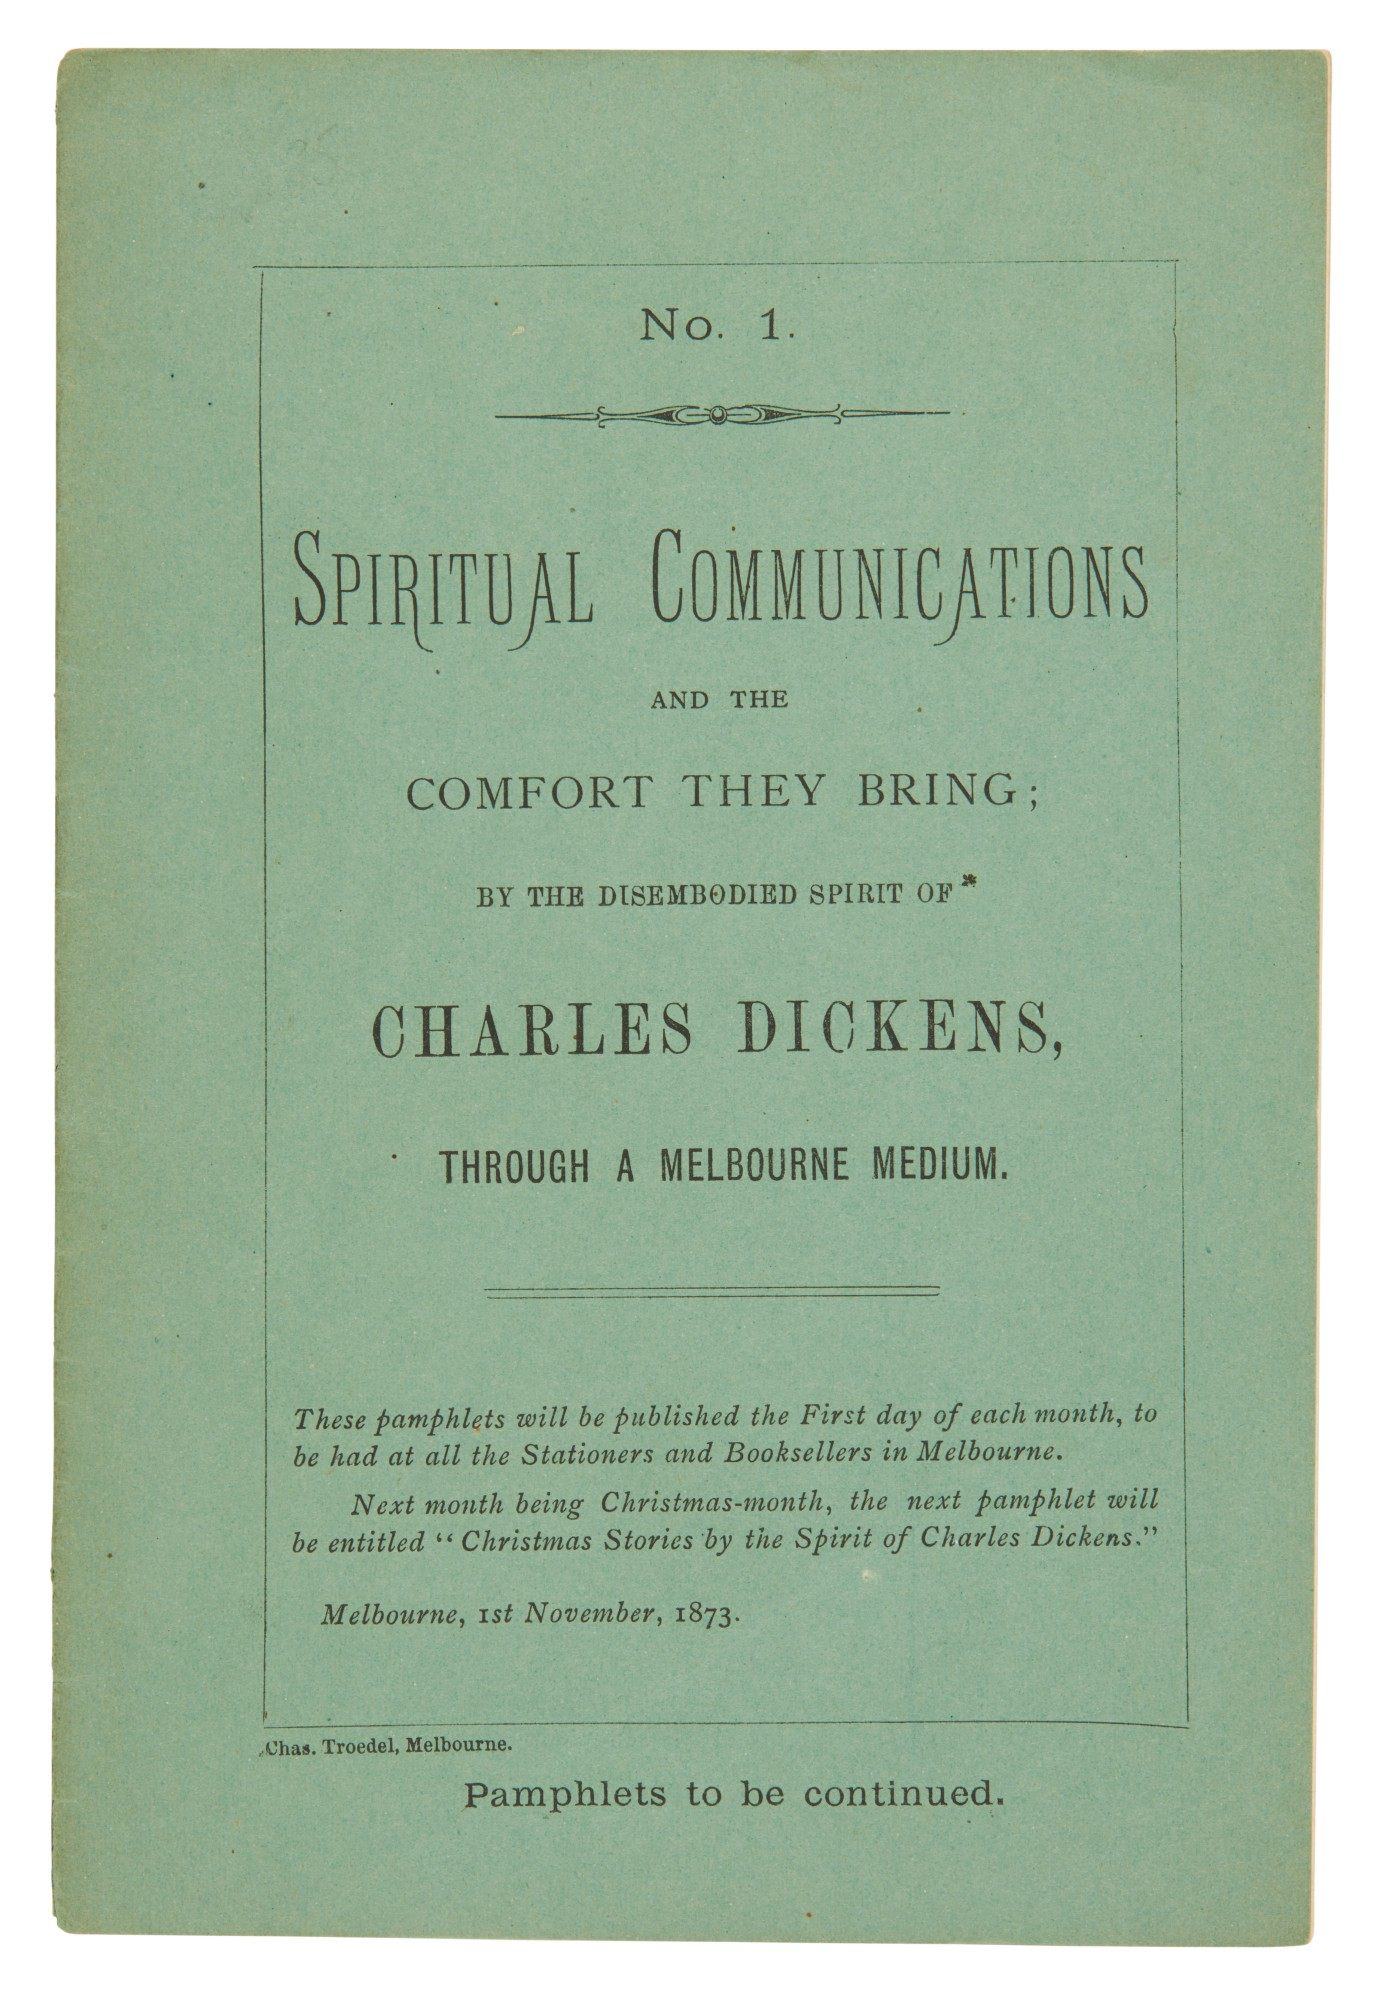 [Dickens], Spiritual Communications and the comfort they bring, 1873, first edition